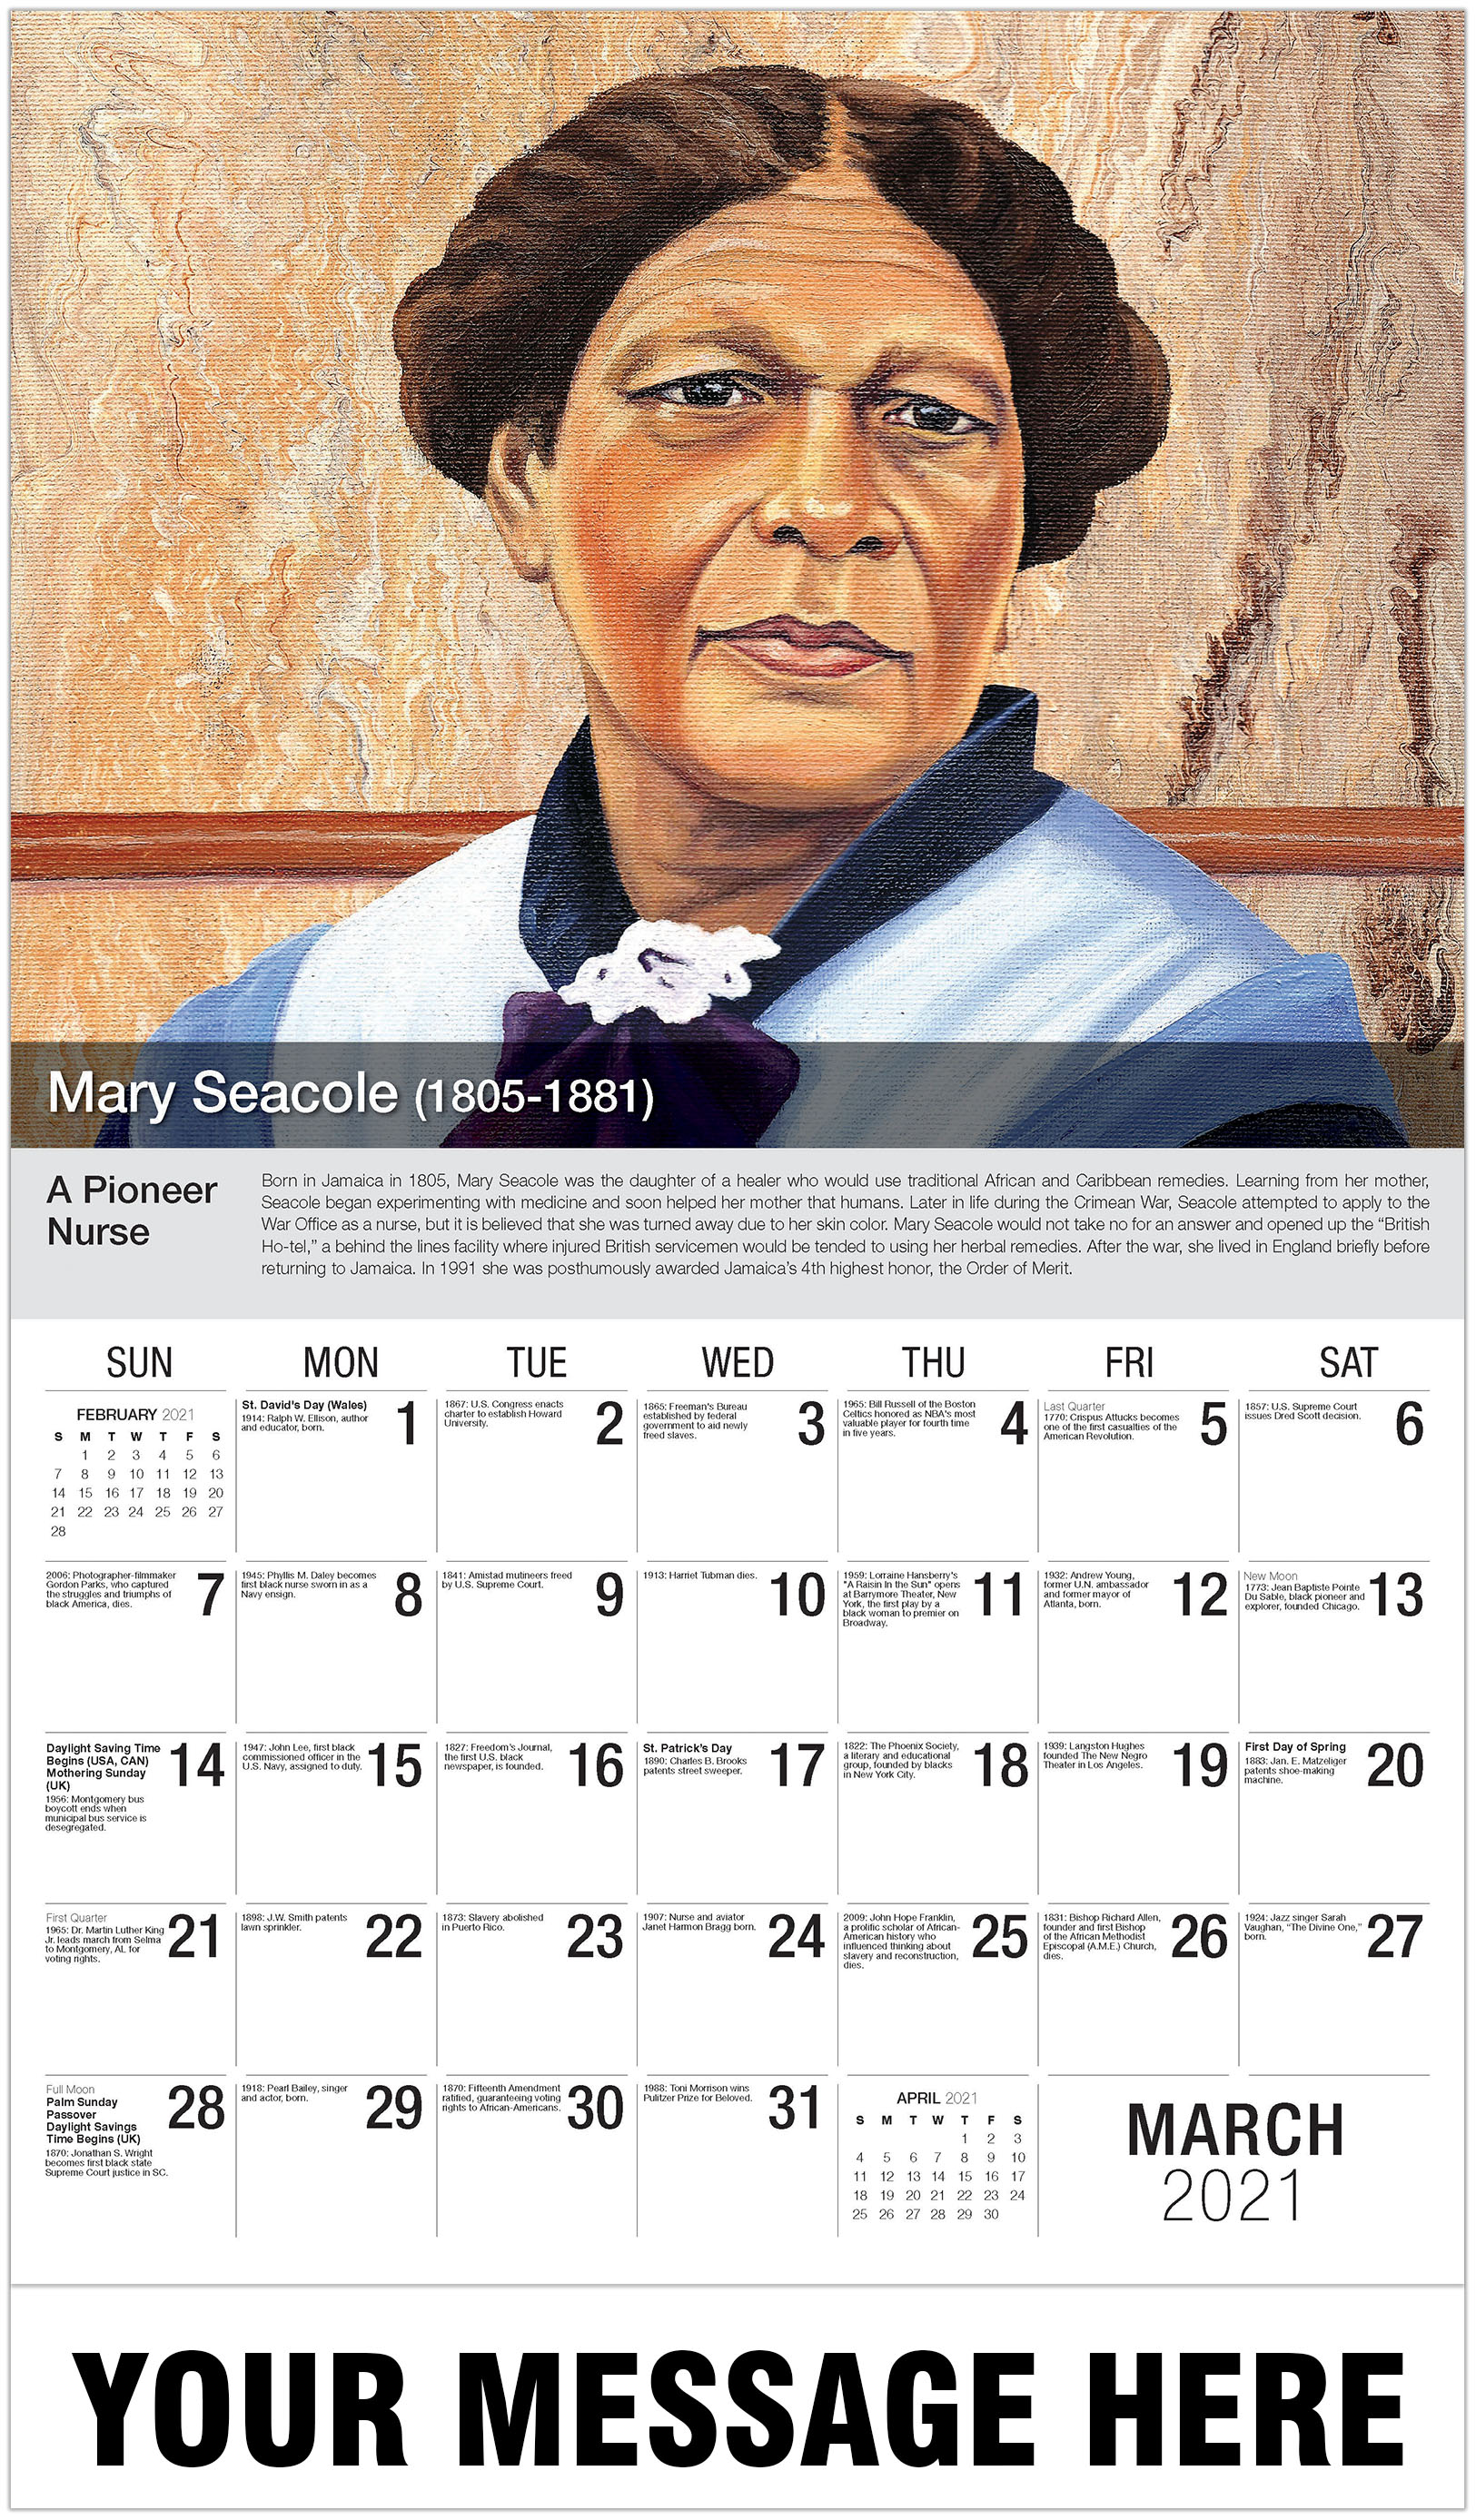 Mary Seacole - March - Black History 2021 Promotional Calendar